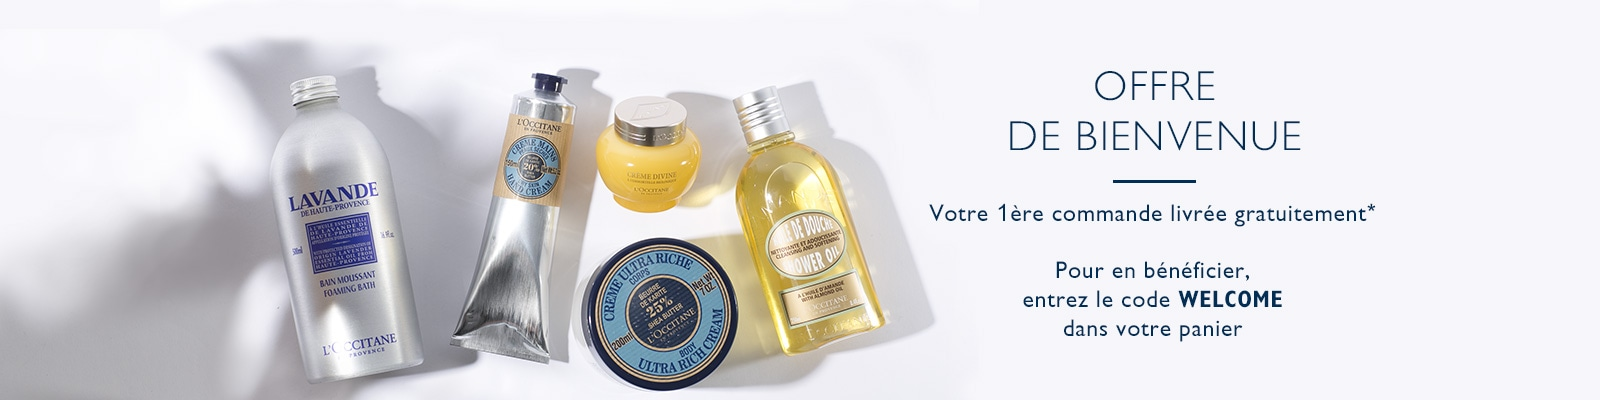 Offre Welcome - L'Occitane Suisse